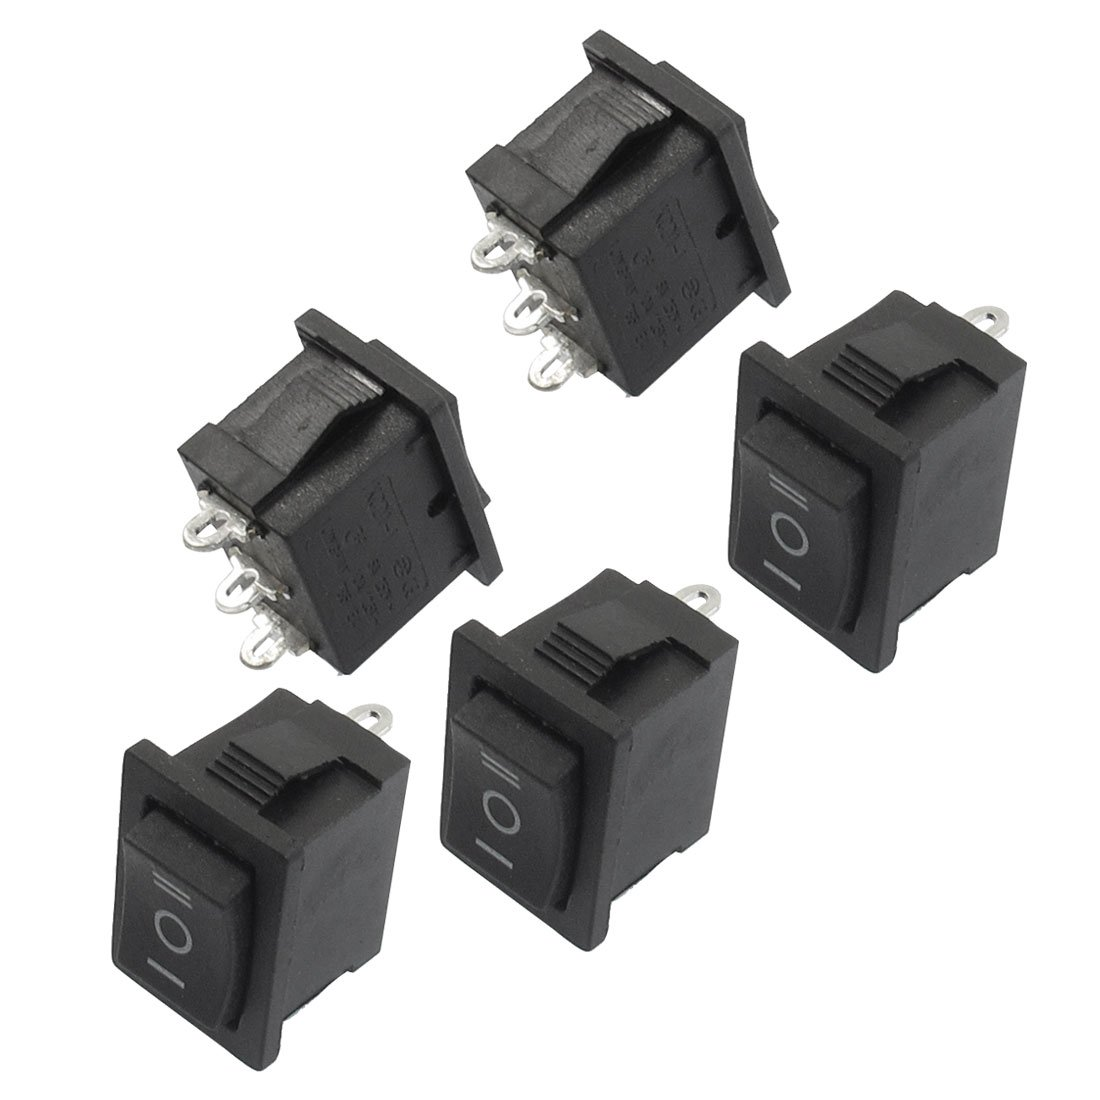 Promotion! 5 pcs SPDT On/Off/On Mini Black 3 Pin Rocker Switch AC 6A/250V 10A/125V 20pcs lot mini boat rocker switch spst snap in ac 250v 3a 125v 6a 2 pin on off 10 15mm free shipping